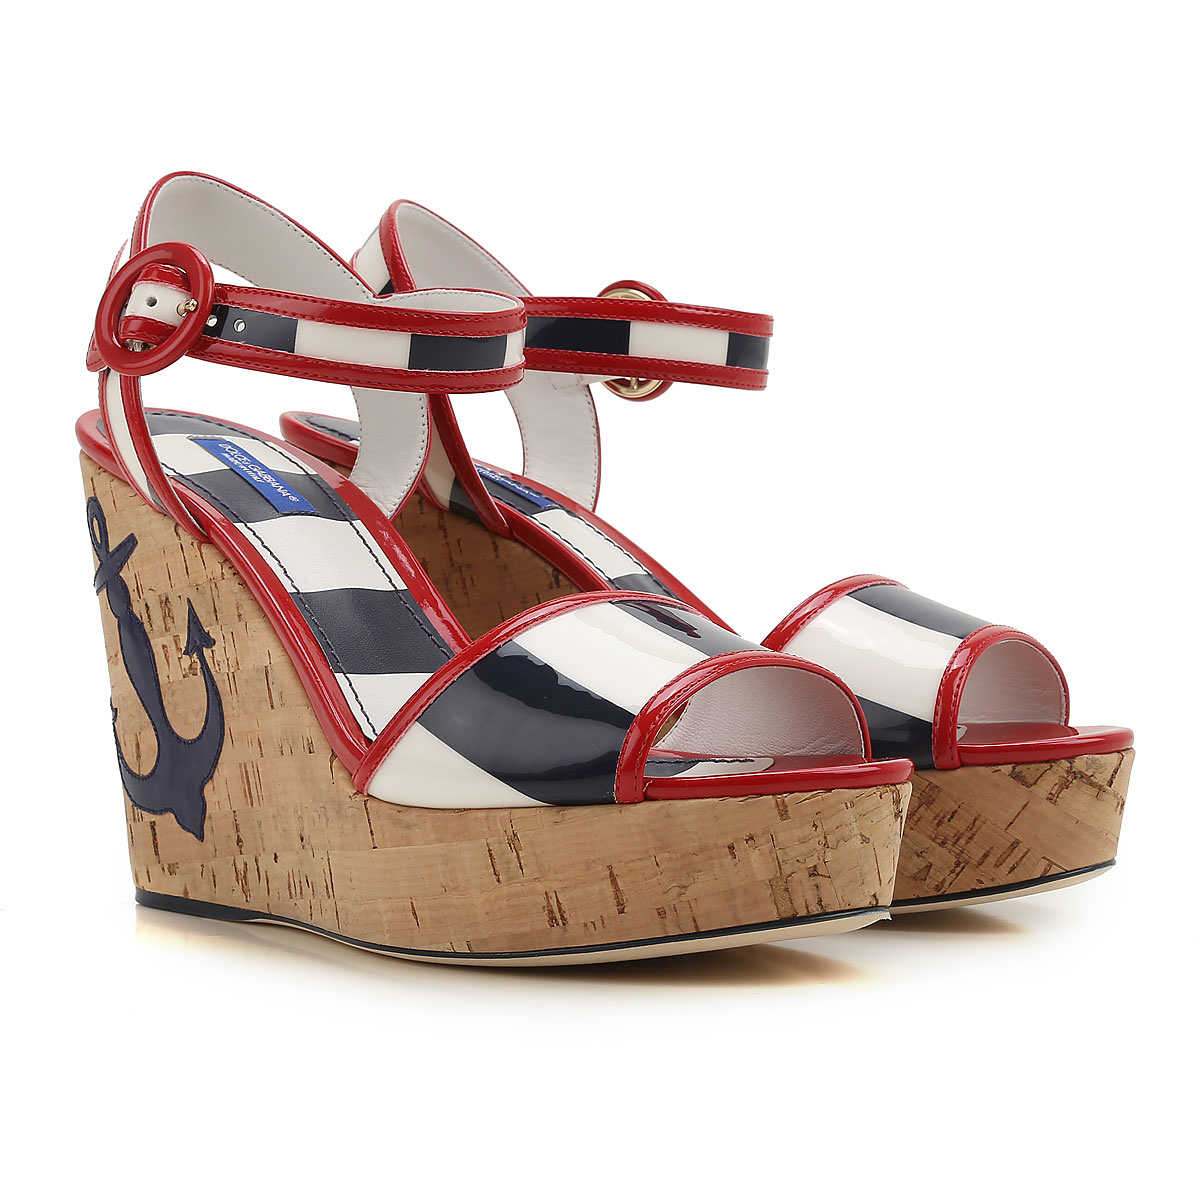 Dolce & Gabbana Wedges for Women On Sale in Outlet Red DK - GOOFASH - Womens HOUSE SHOES